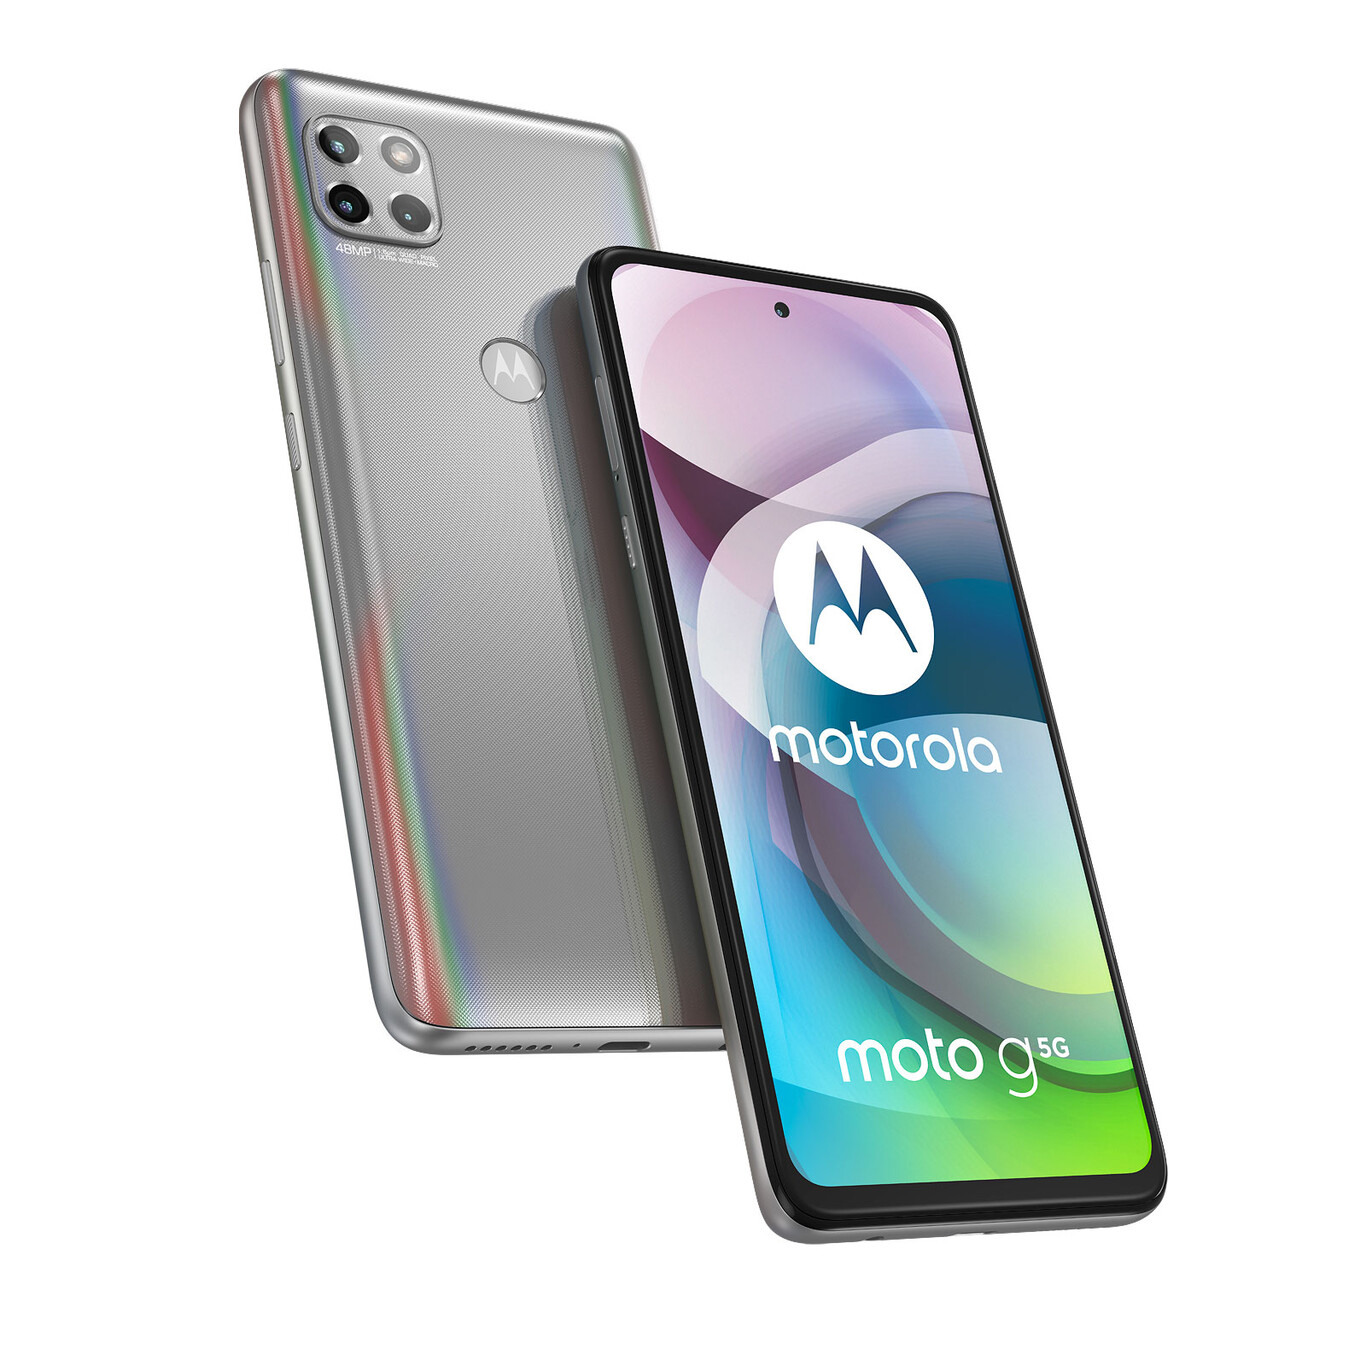 Moto G 5G: super battery and 5G below 300 euros